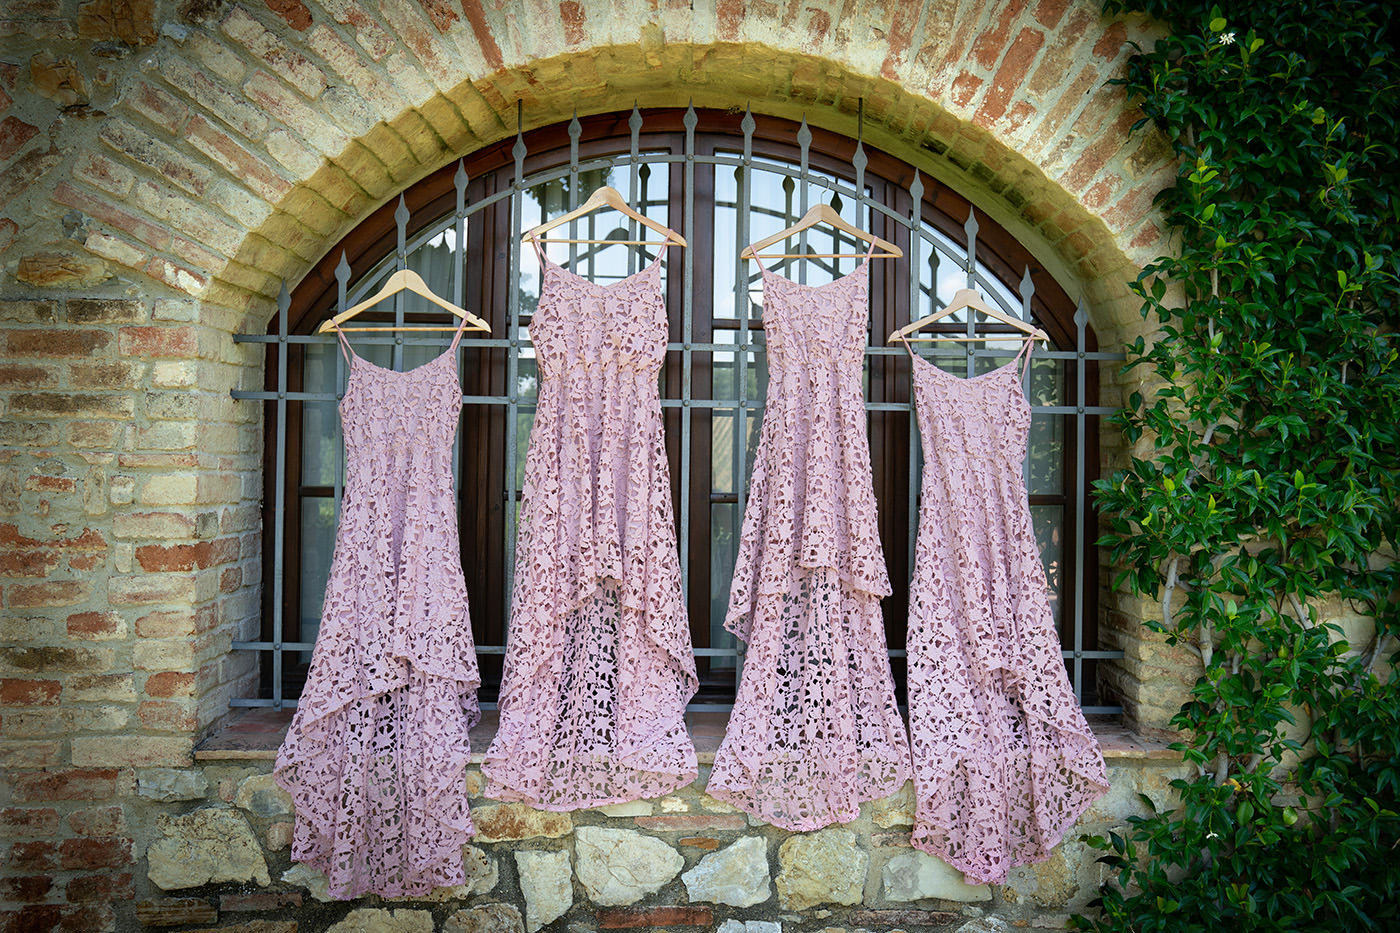 Tuscan Wedding Photo Shoots At Palagio Castle: bridesmade weding dress